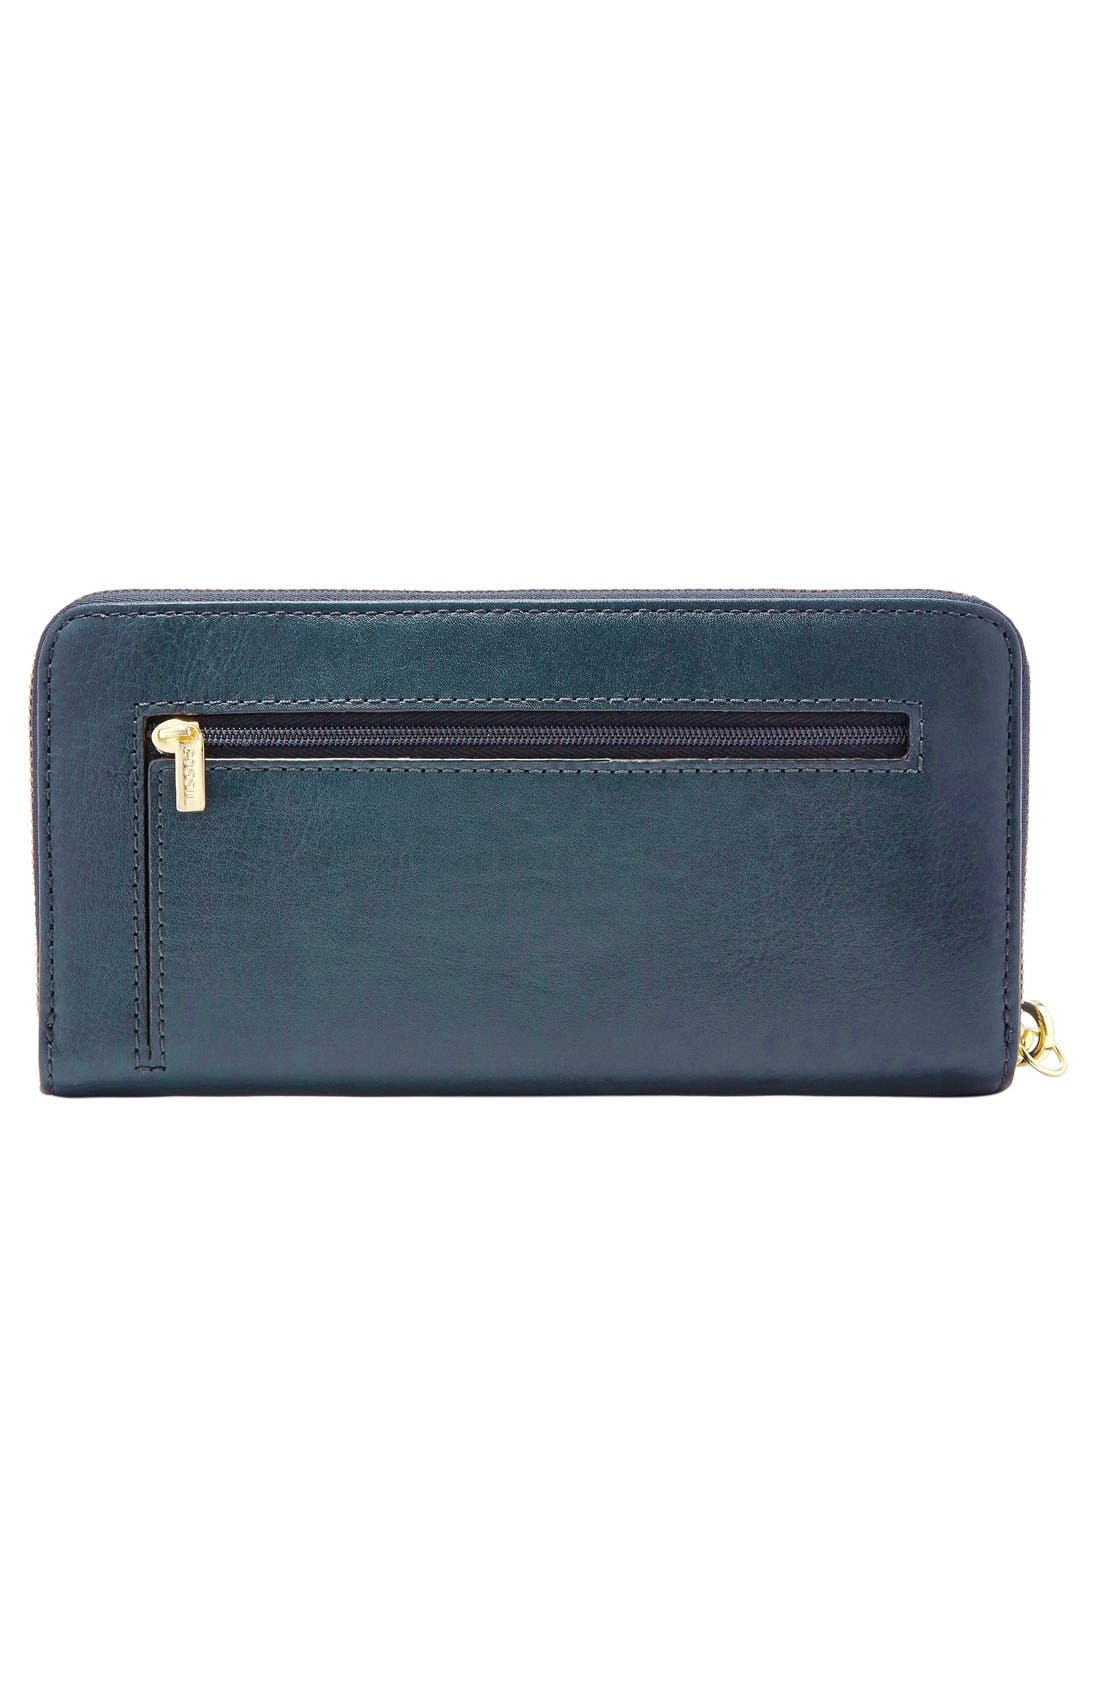 Alternate Image 2  - Fossil 'Sydney' Zip Clutch Wallet